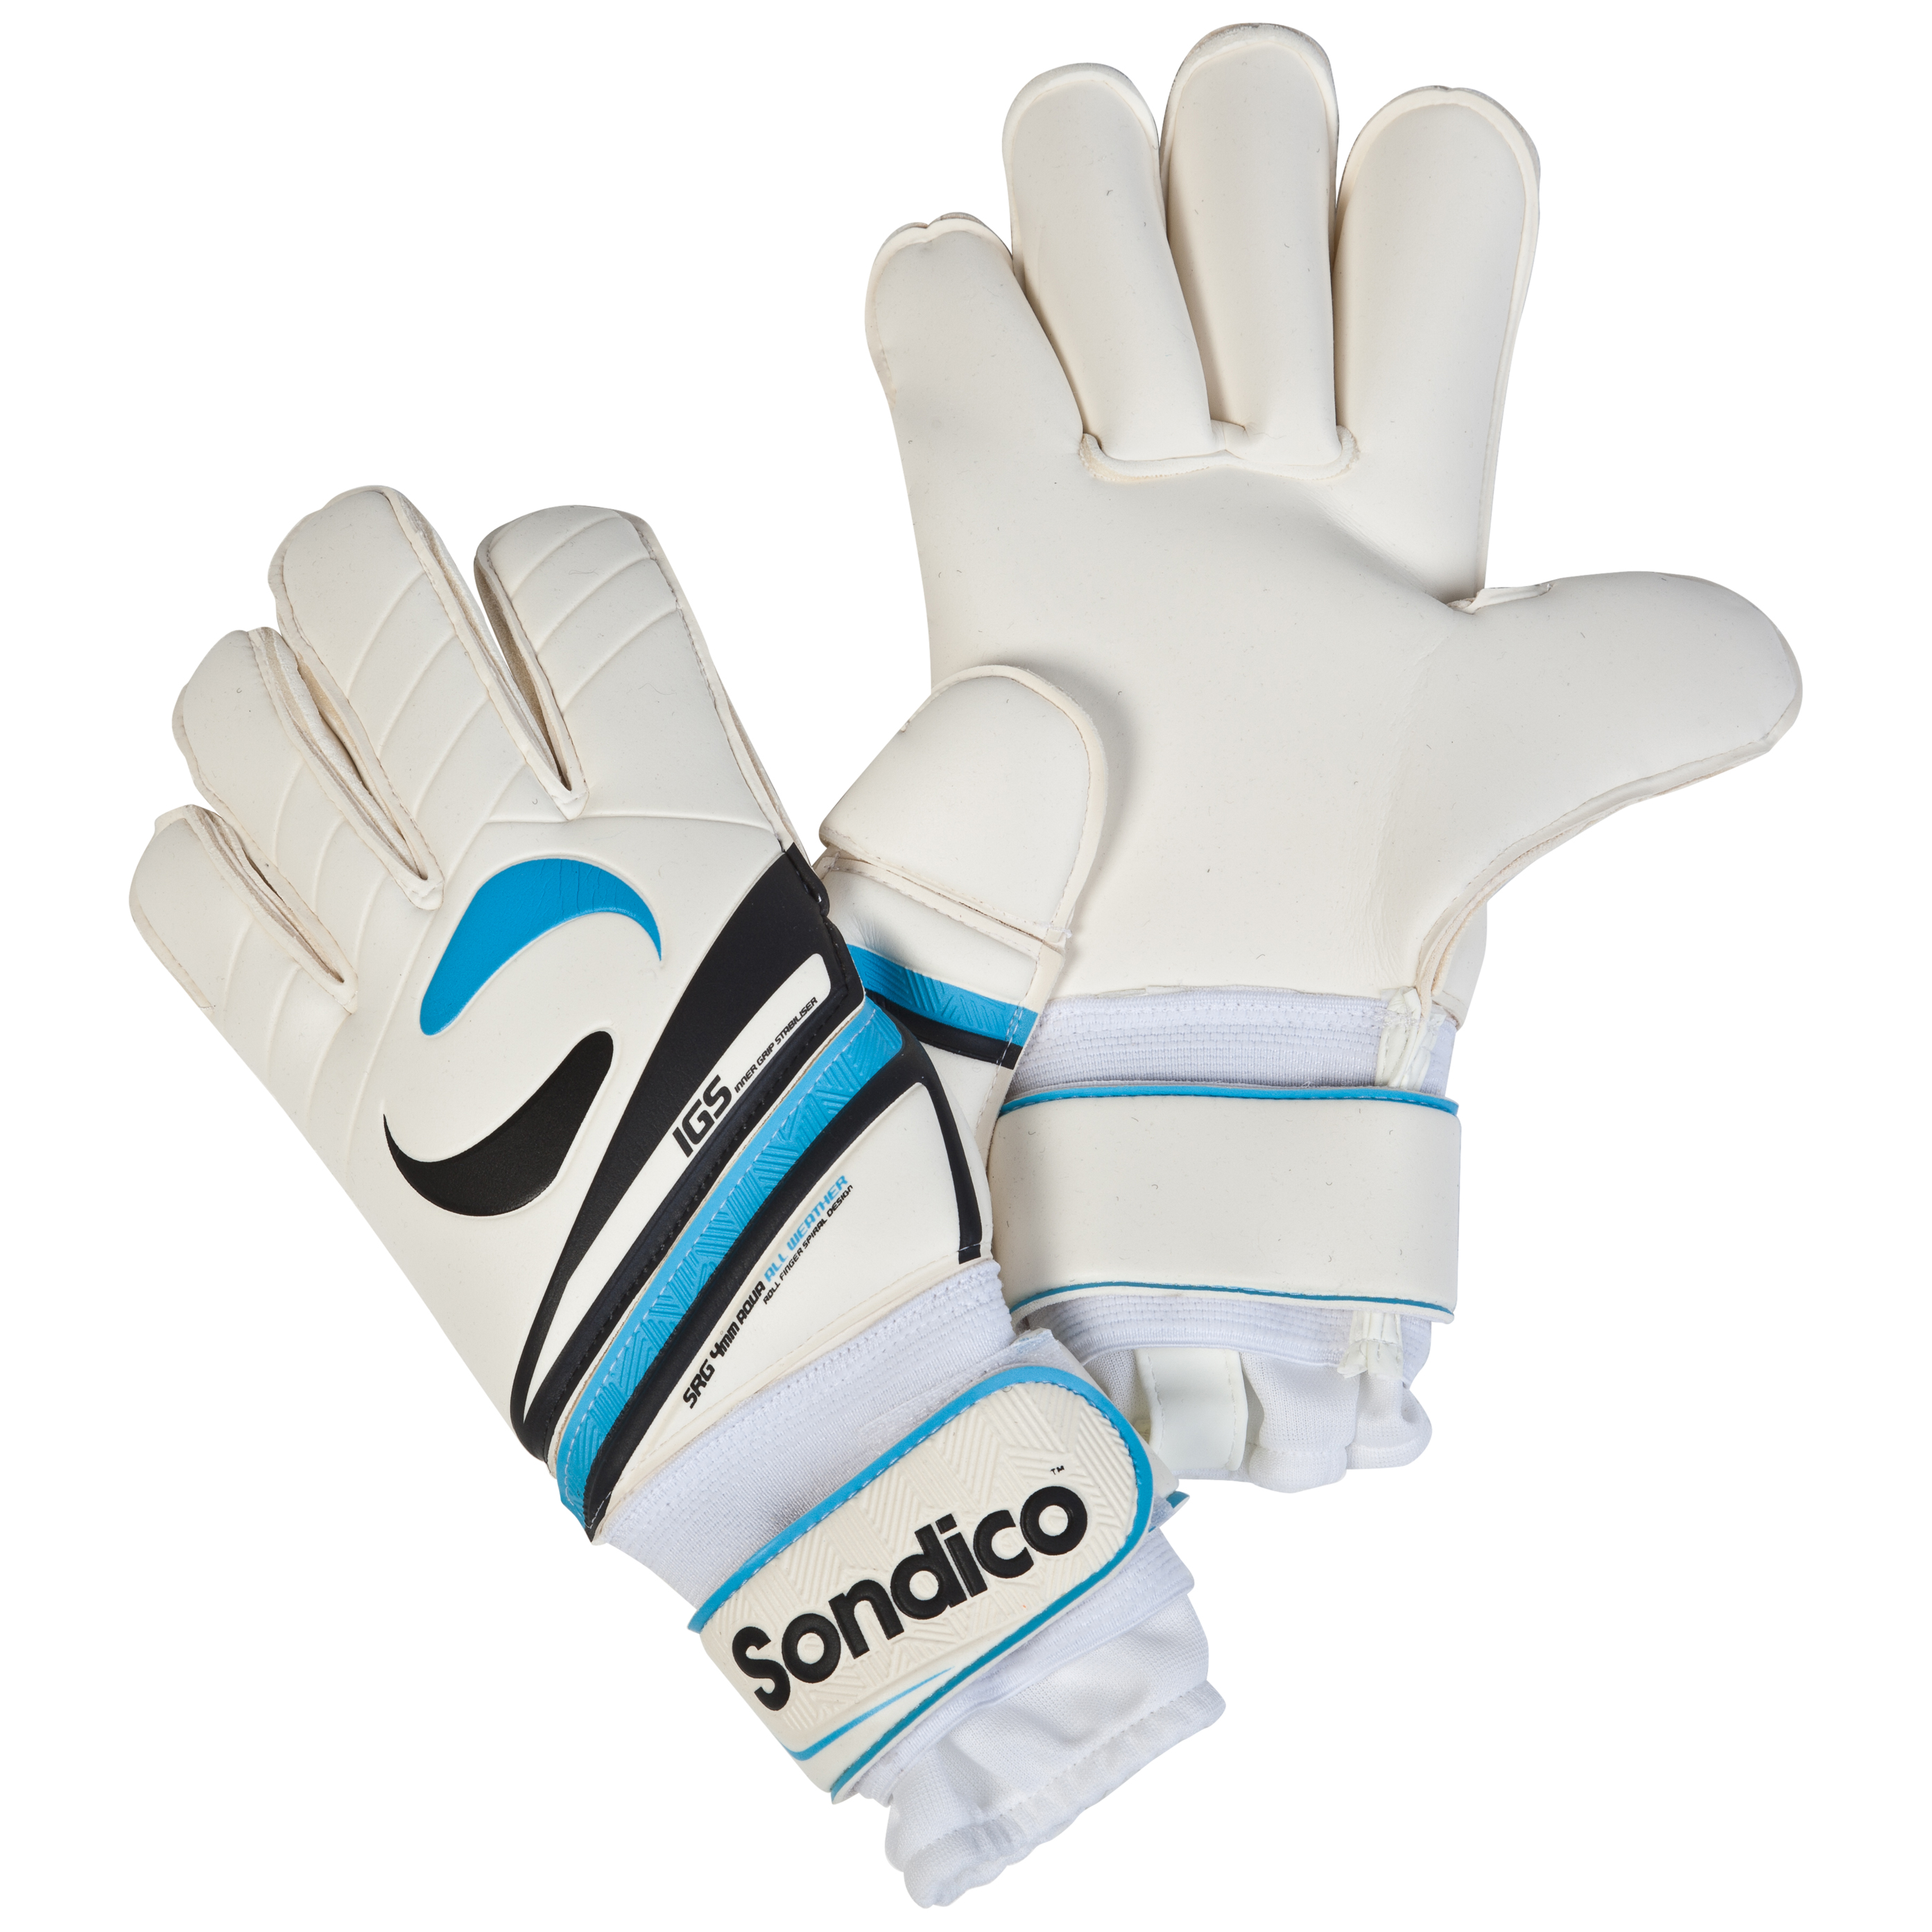 Sondico Legend Pro Roll Spiral 360 Goalkeeper Gloves - White/Black/Gun Metal/Cyan